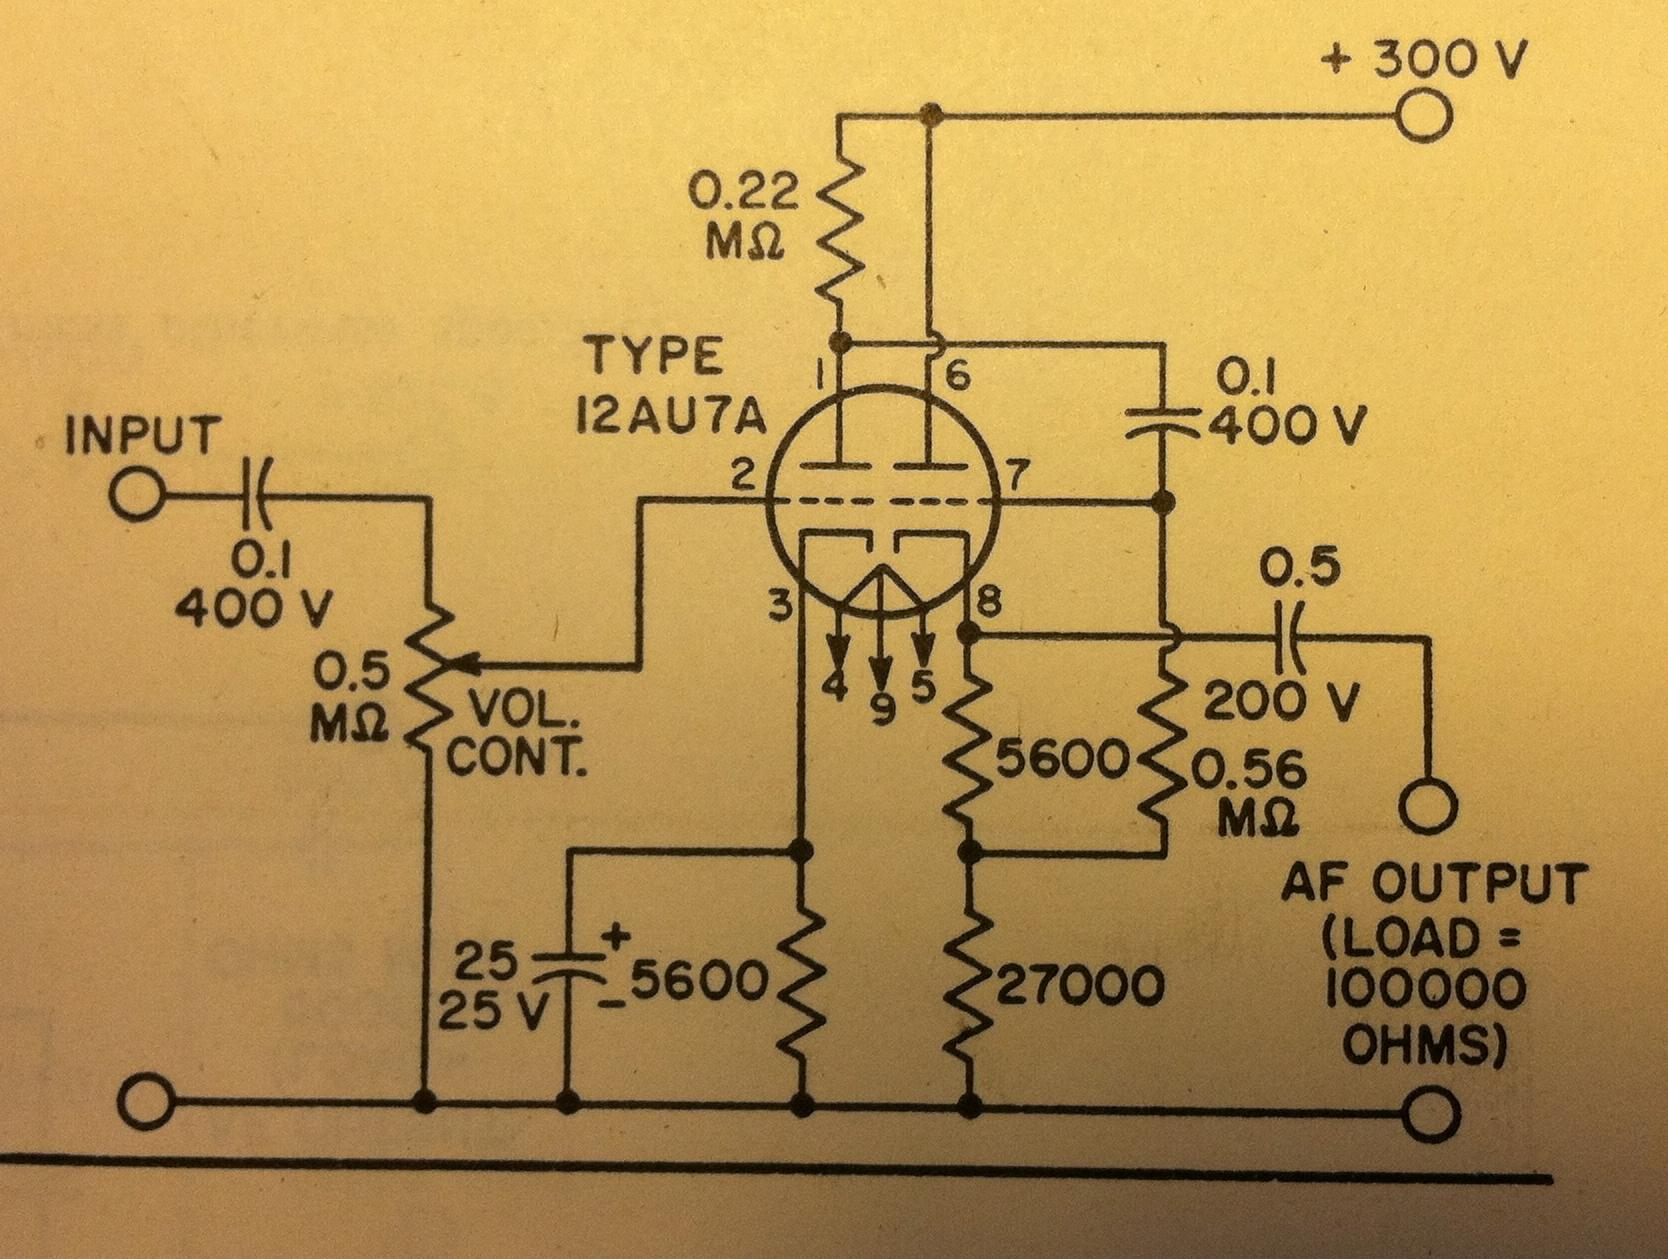 Popup H Elecmech p moreover Vacuum tube circuits besides 85773 Build A Simple Single Ended Tube  lifier besides Tens Unit Schematic as well Air Conditioning. on vacuum tube circuit simple